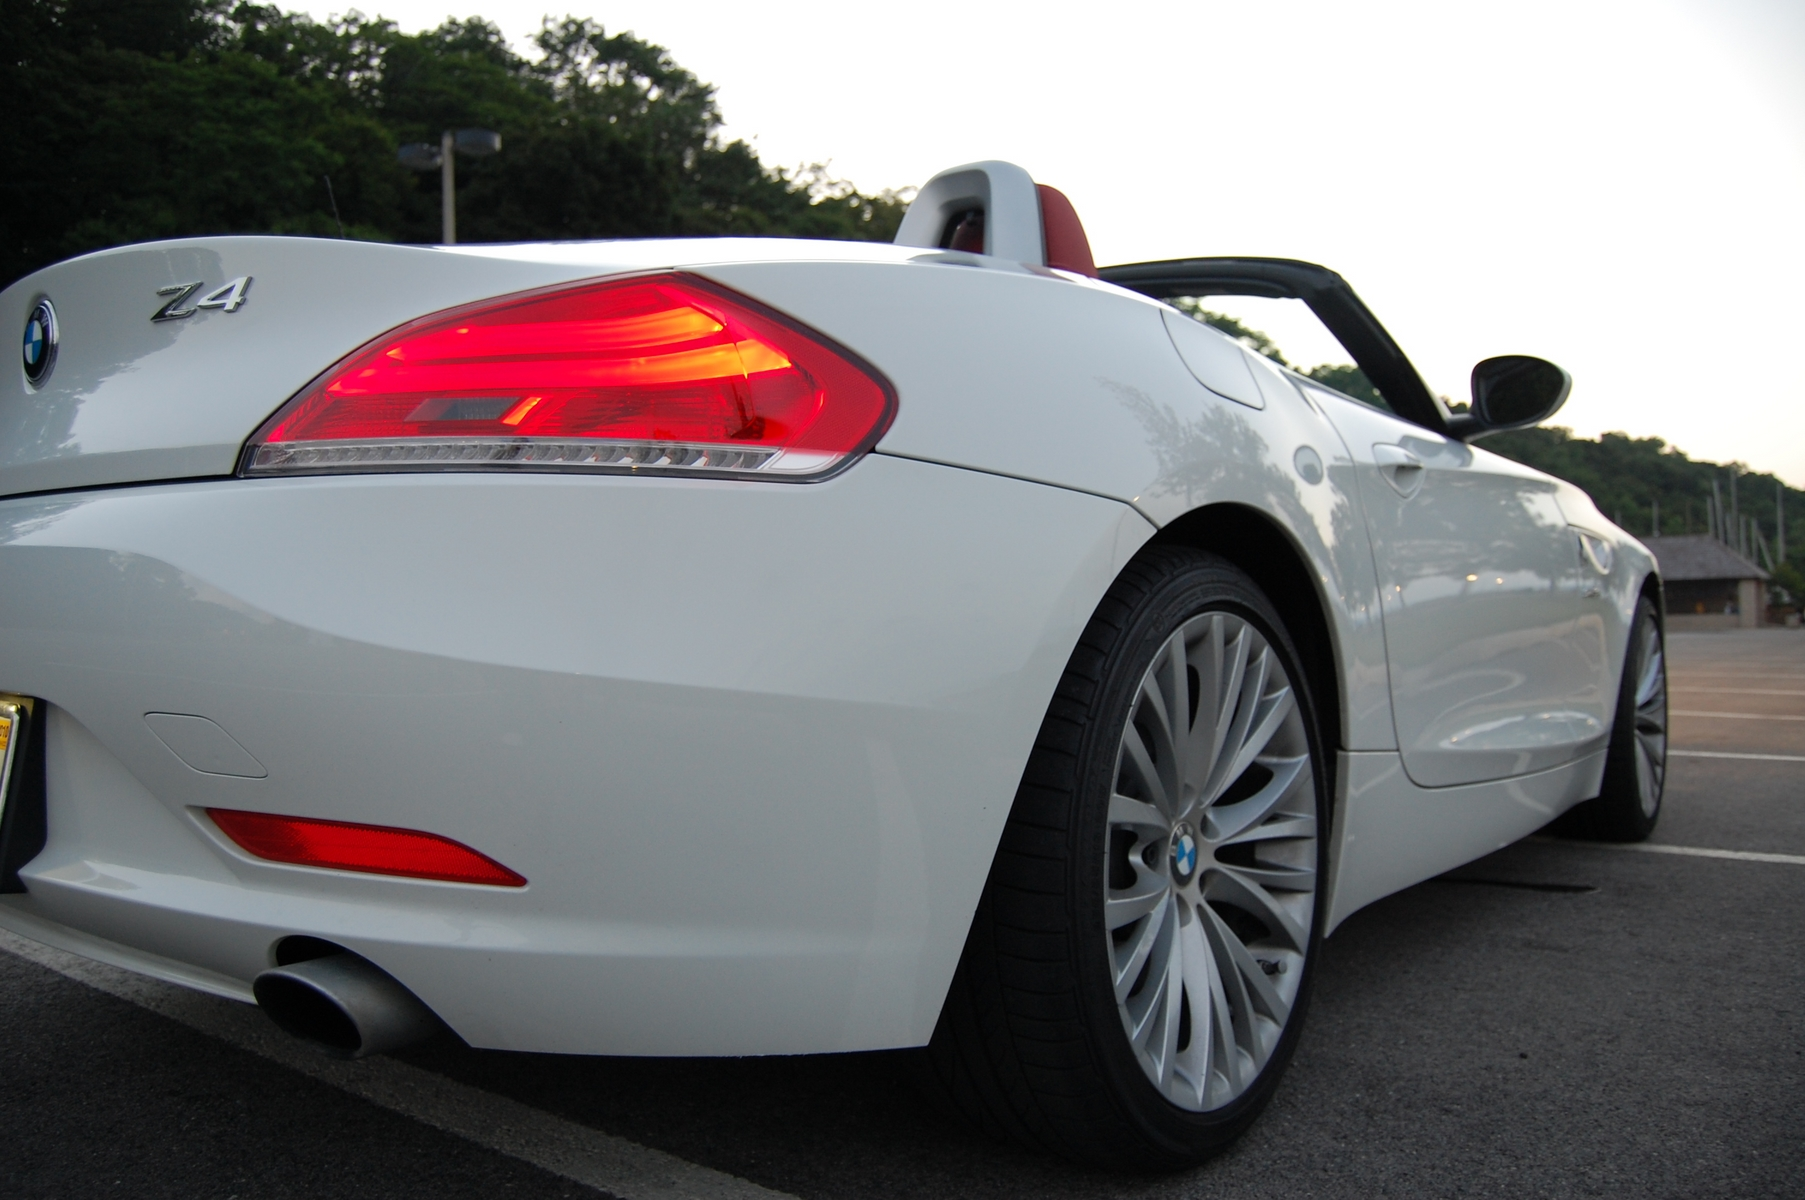 2009 bmw z4 photo gallery 4